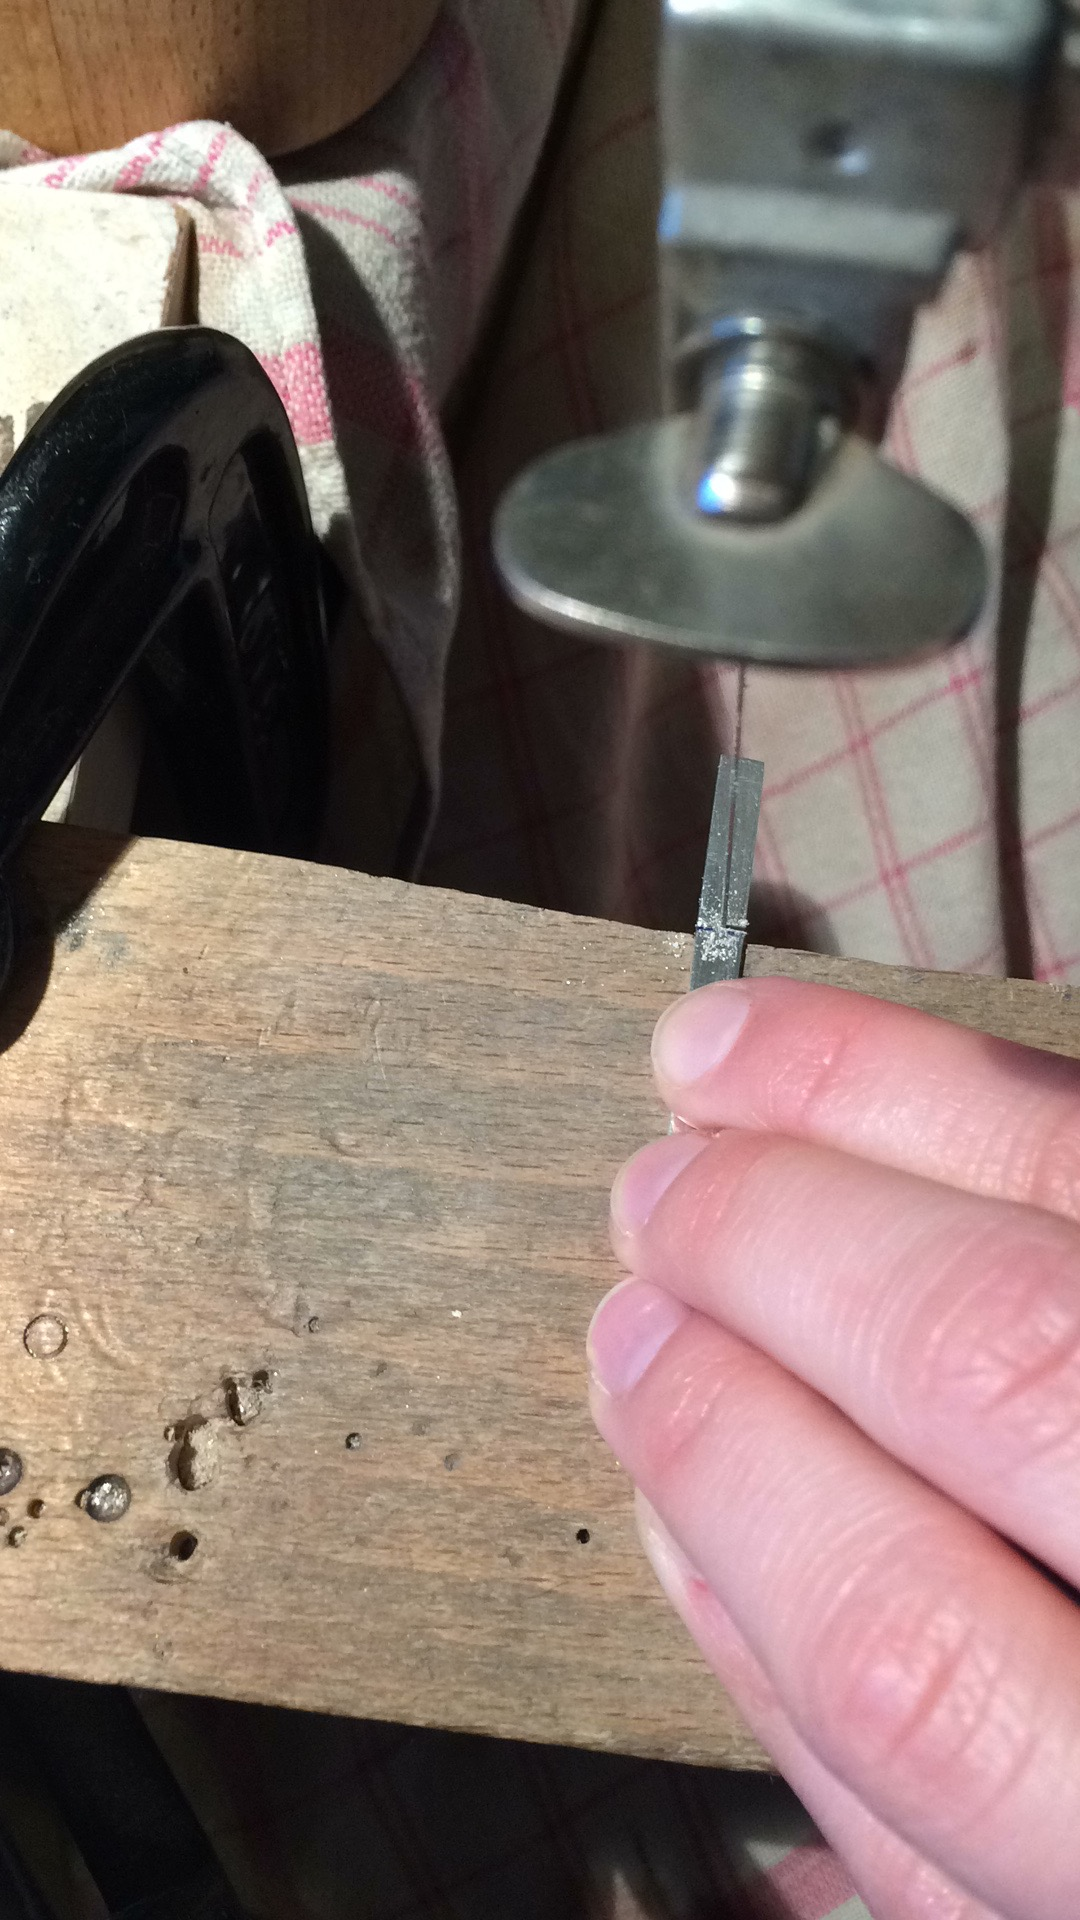 Sawing the correct length of silver for UK size F for her little finger (tiny!)